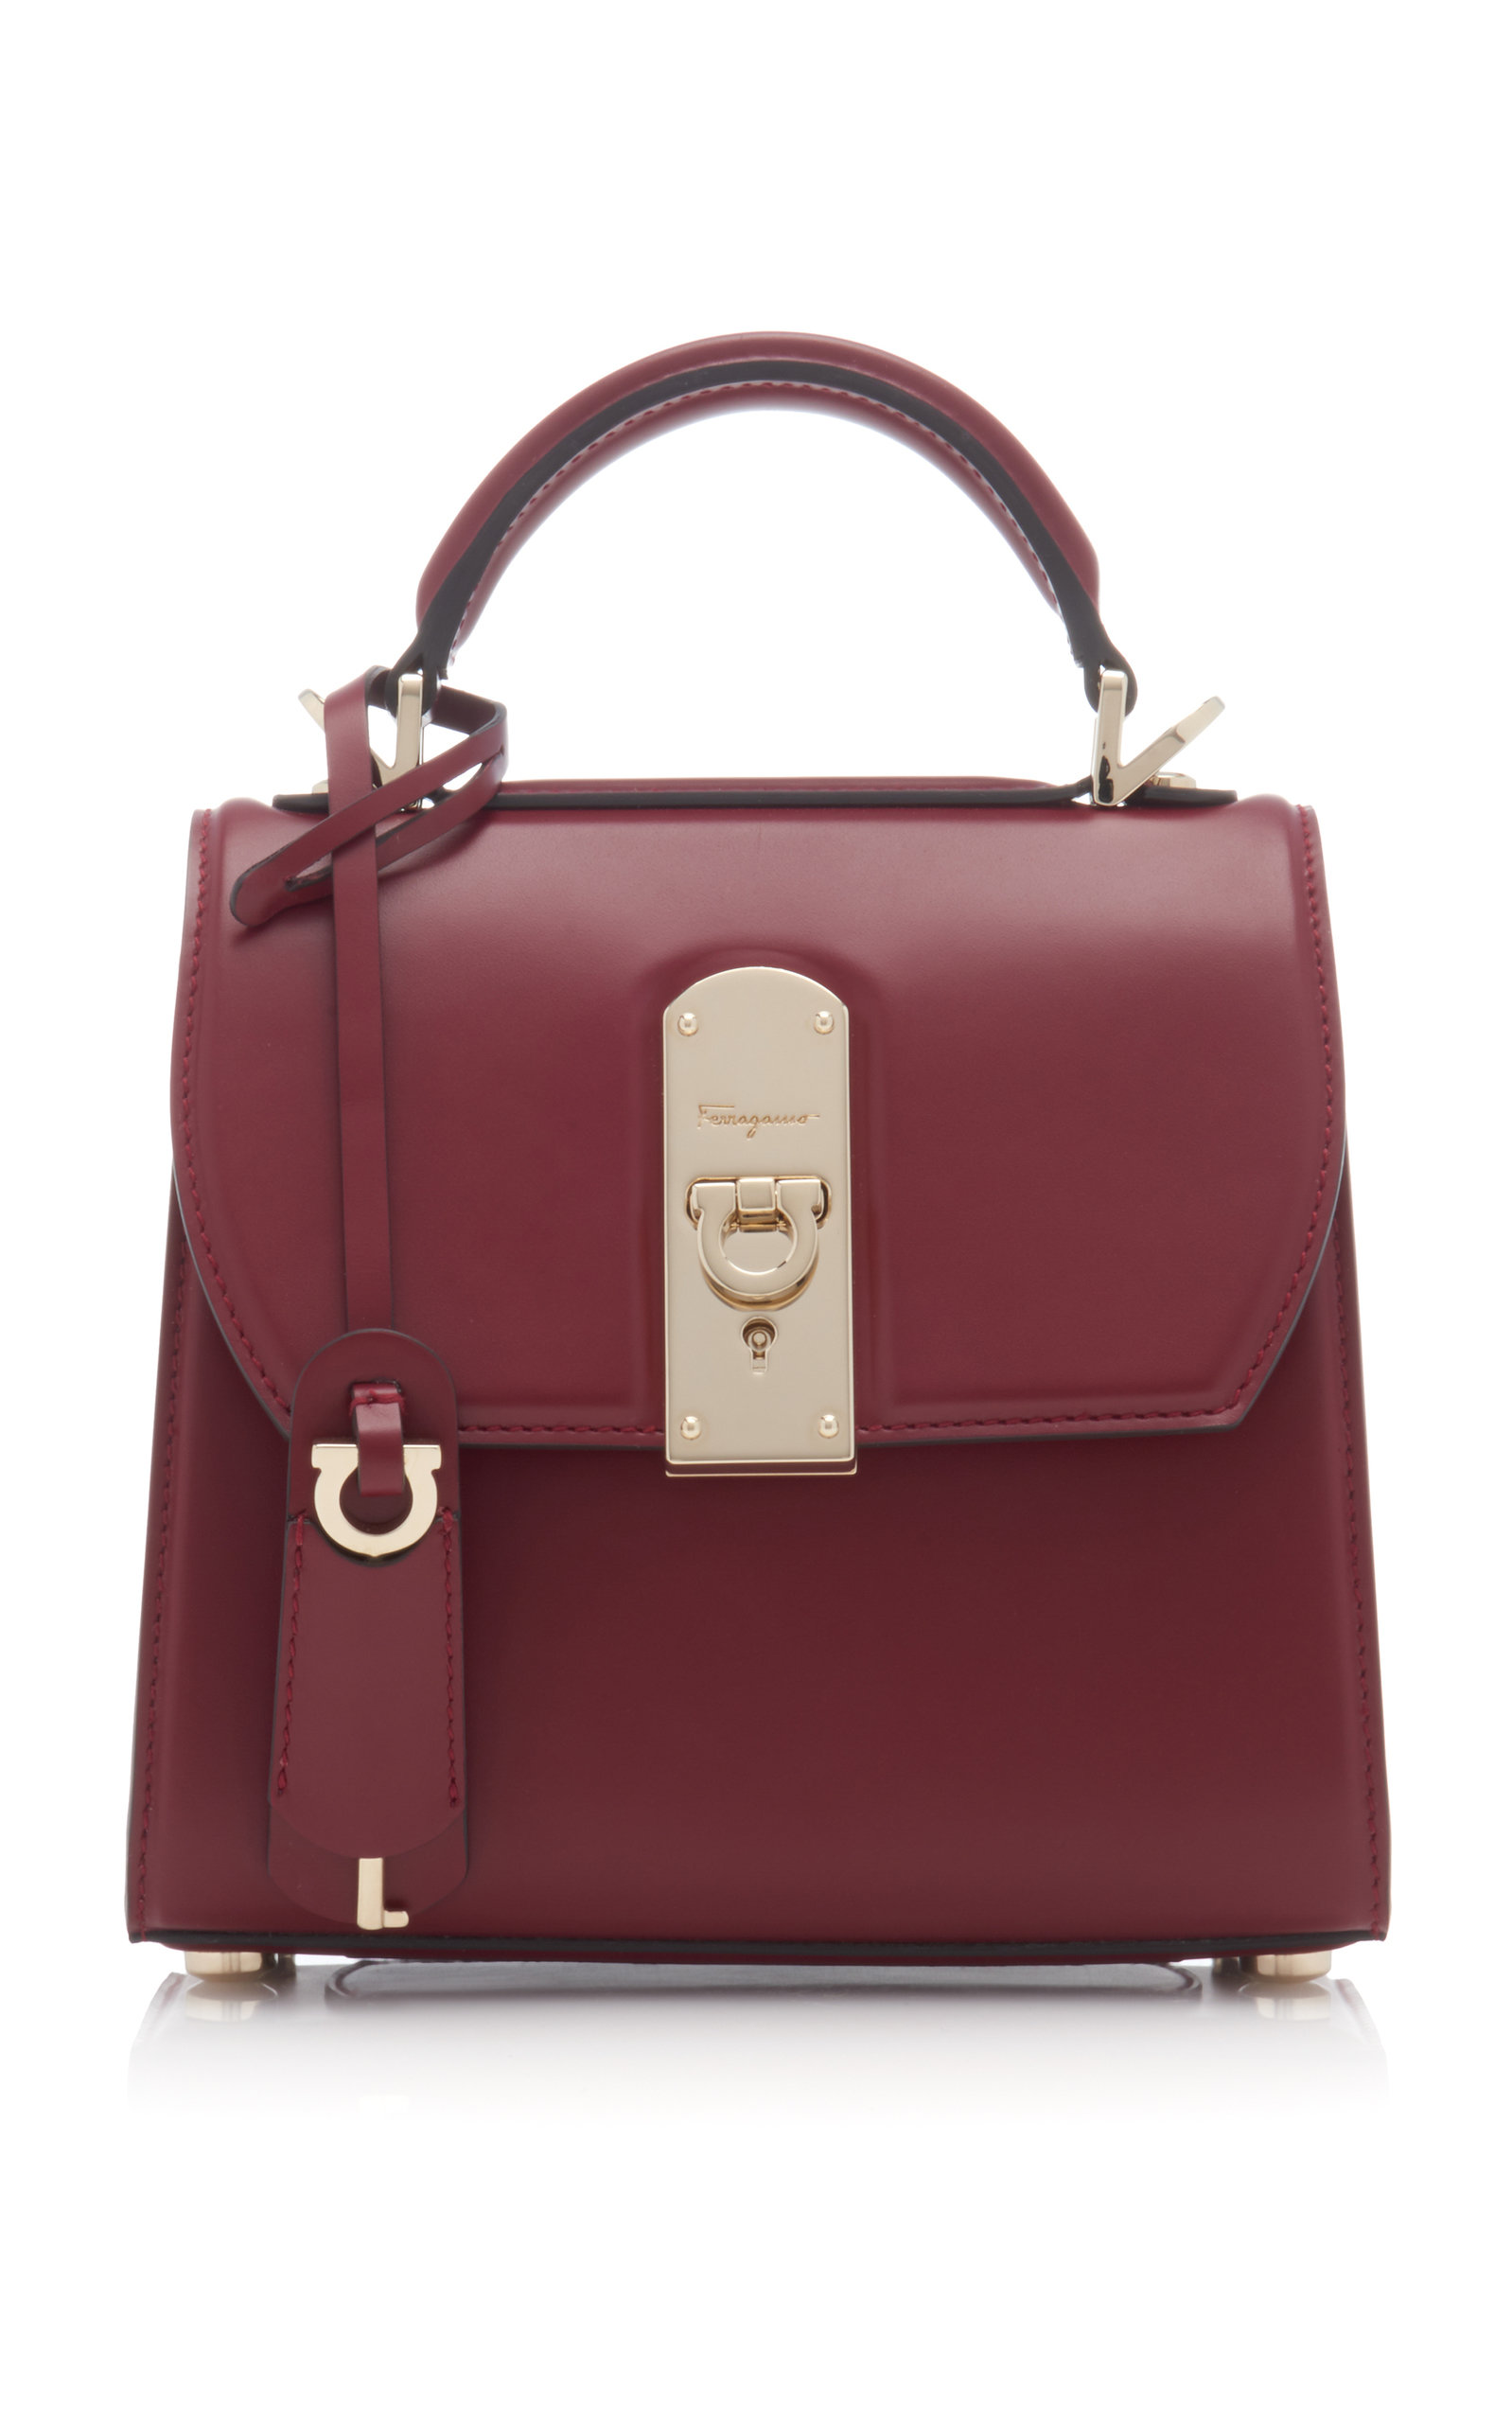 34541645bf3670 Boxyz Small Leather Top Handle Bag by Salvatore Ferragamo